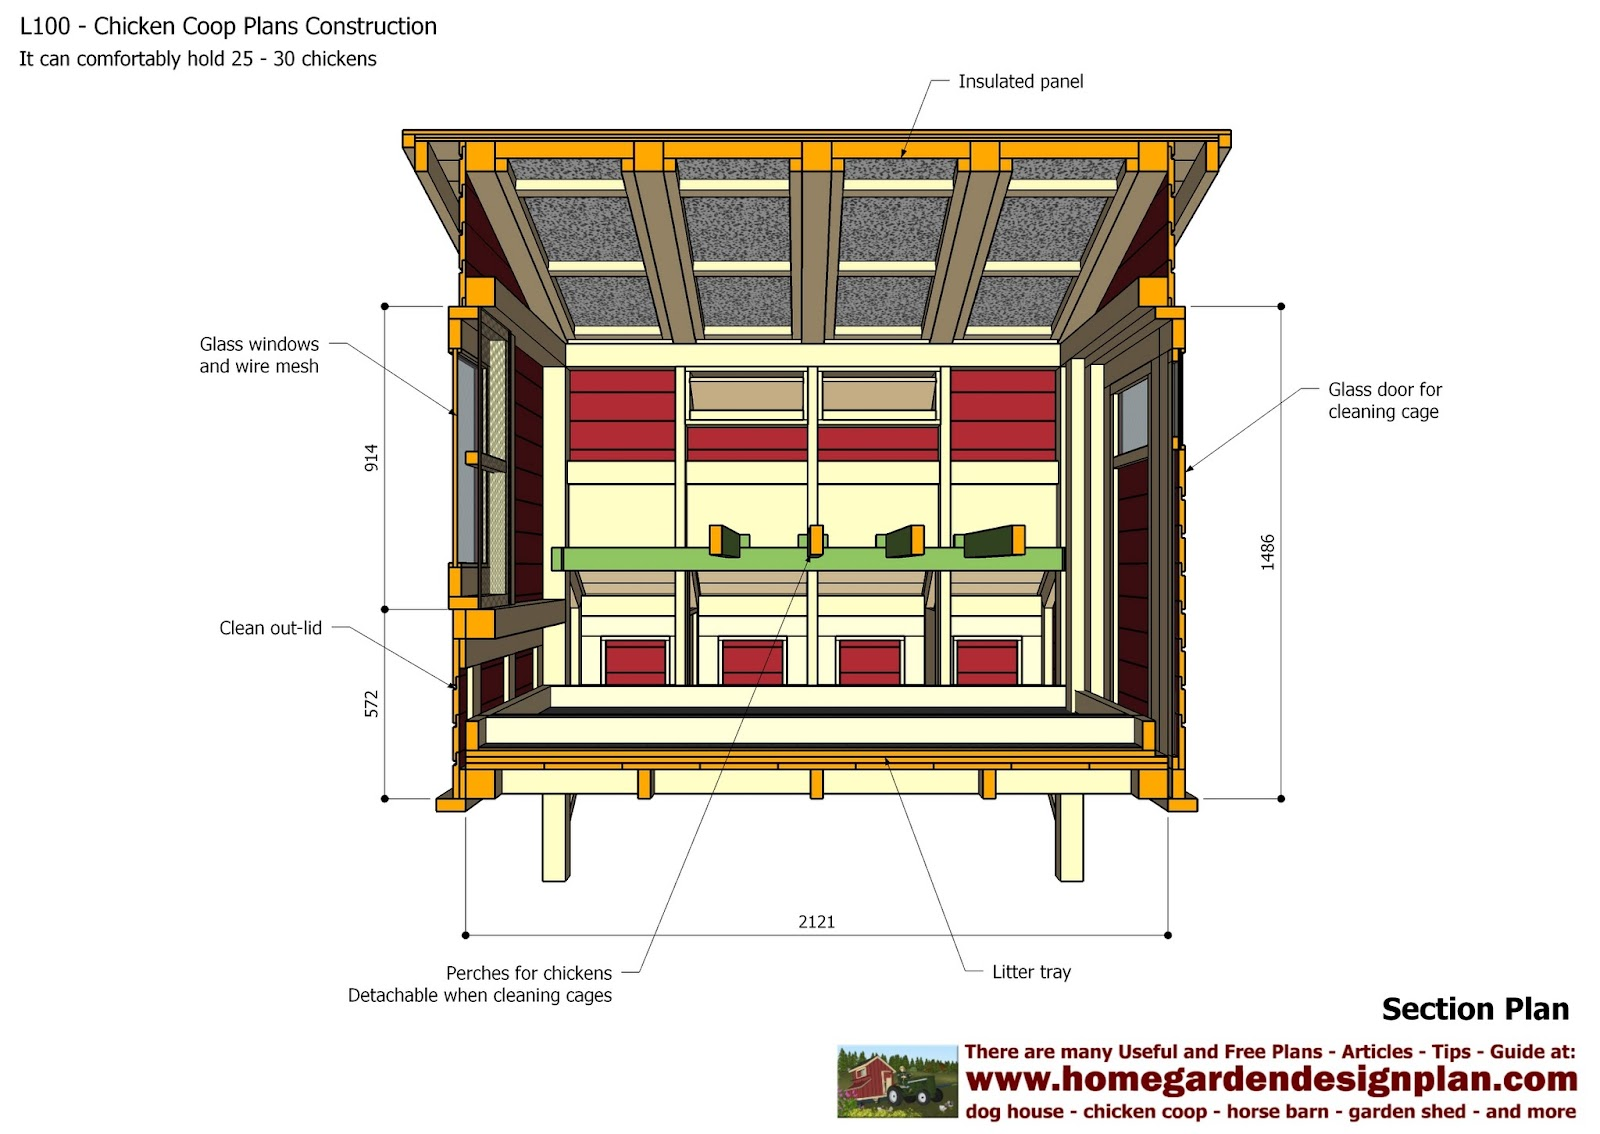 Home garden plans l100 chicken coop plans construction for A frame chicken house